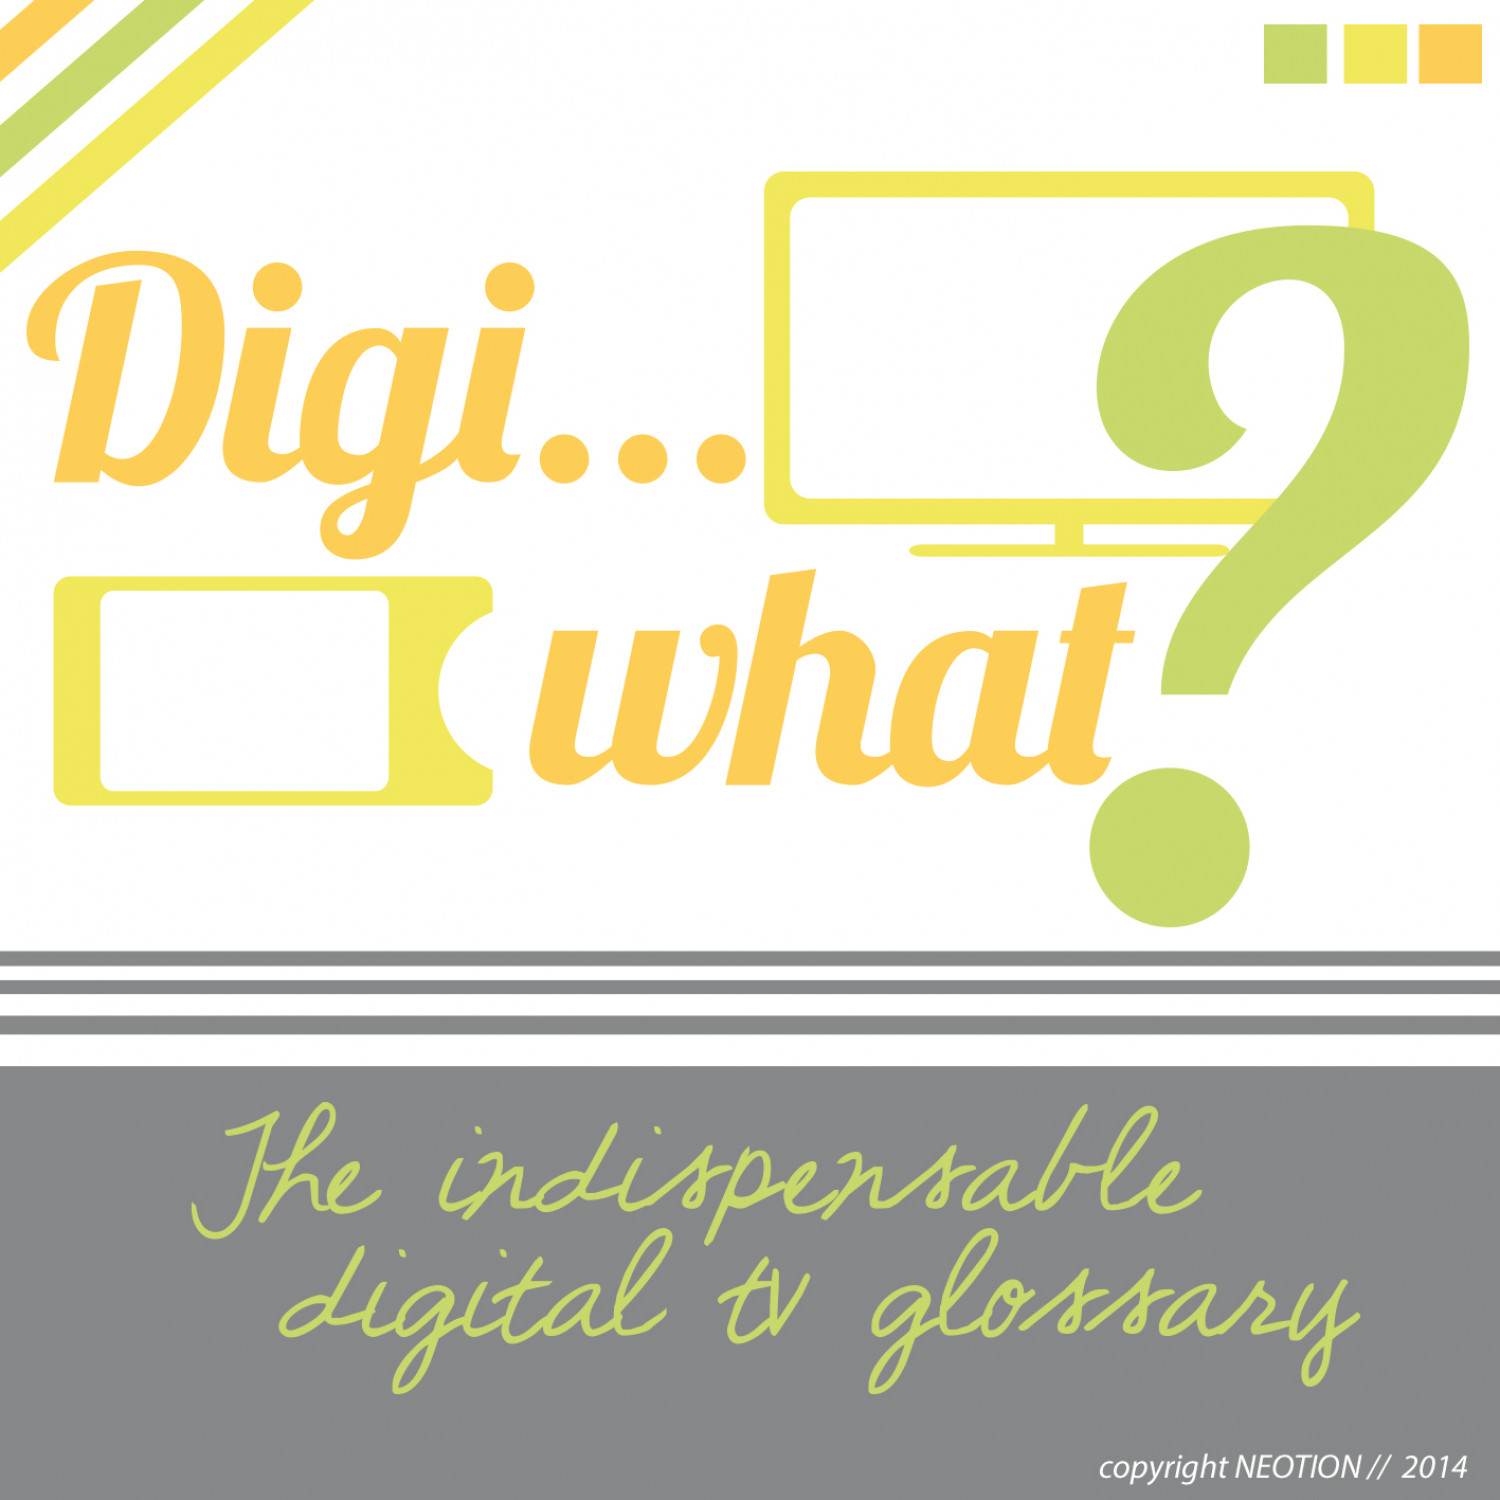 Digi... What? The Indispensable Digital TV Glossary Infographic